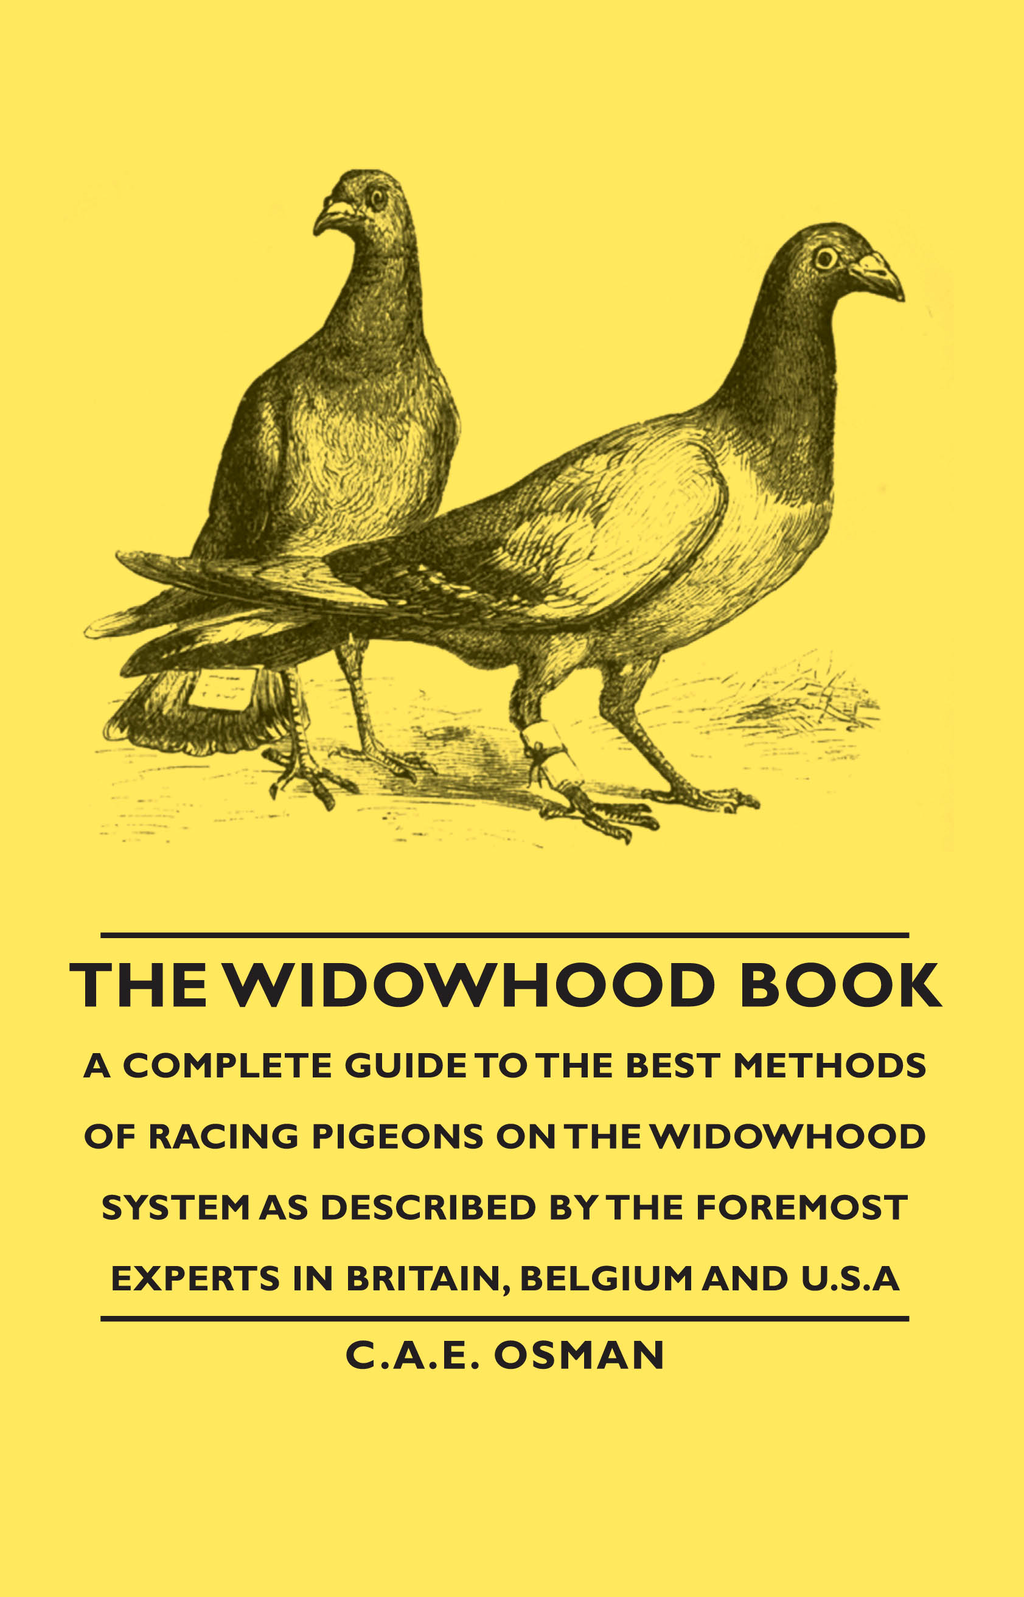 The Widowhood Book - A Complete Guide to the Best Methods of Racing Pigeons on the Widowhood System as Described by the Foremost Experts in Britain, Belgium and U.S.A By: C. A. Osman